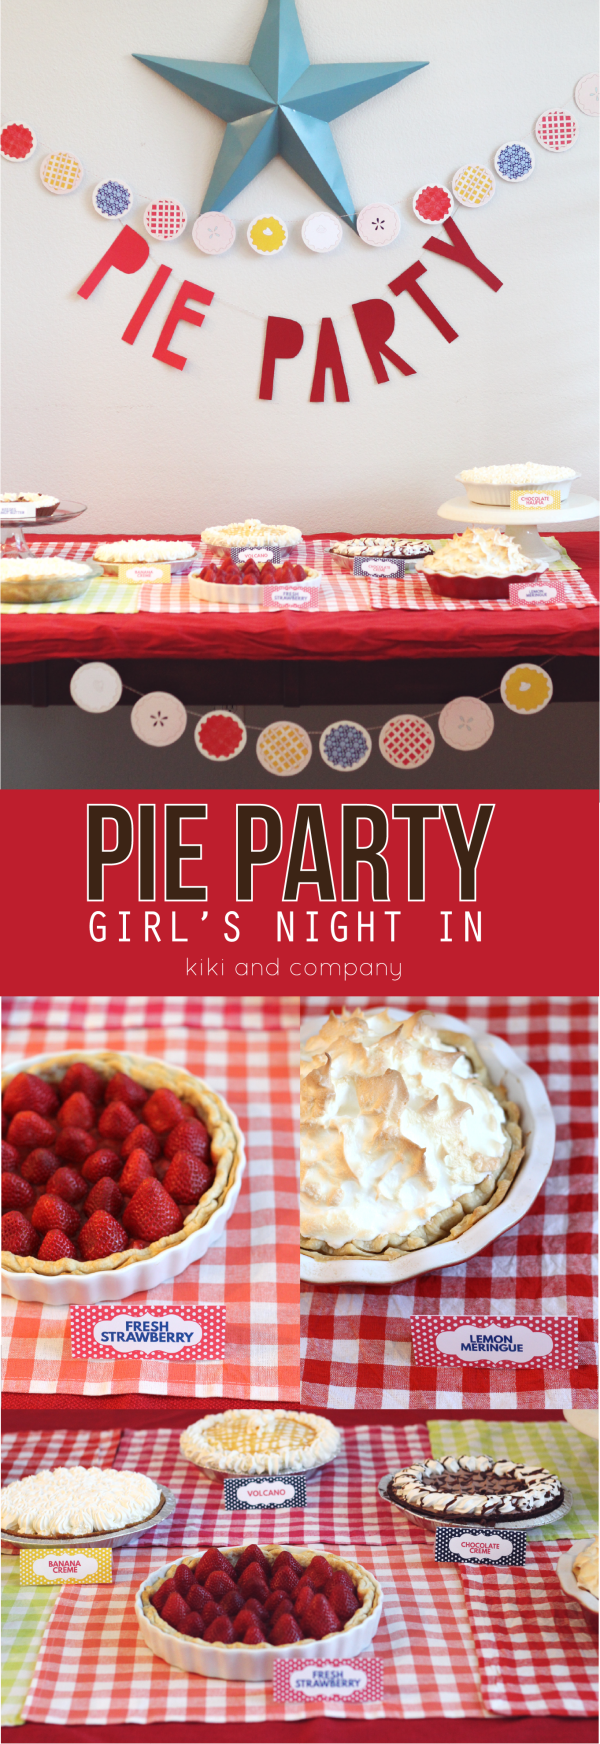 Pie Party Girls Night in at kiki and company